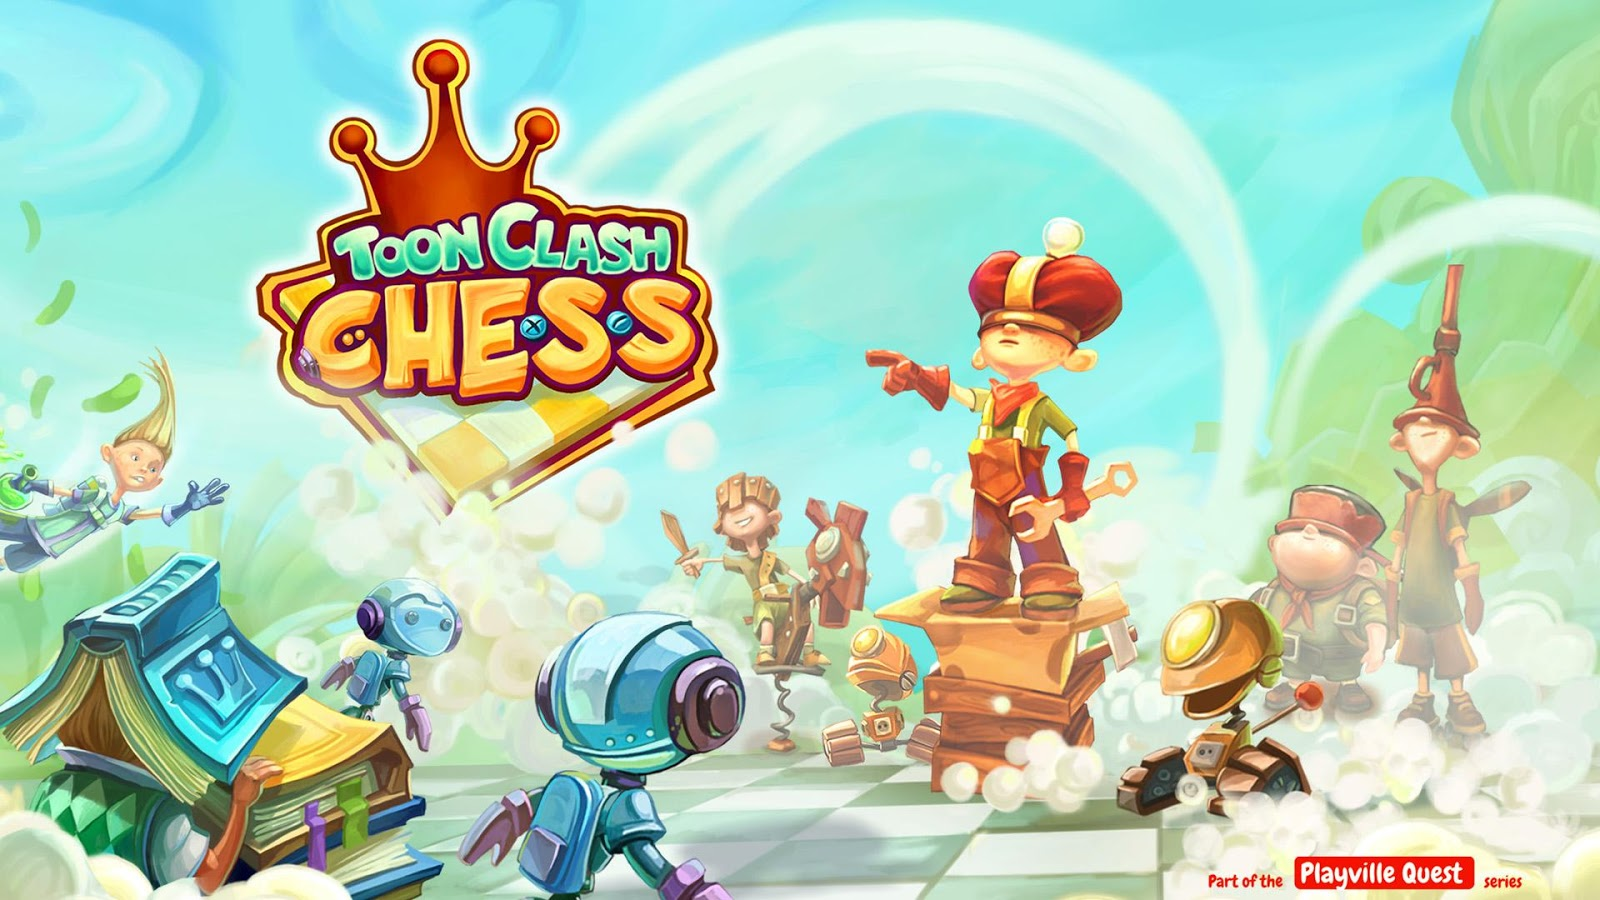 Тoon Clash Chess Screenshot 4